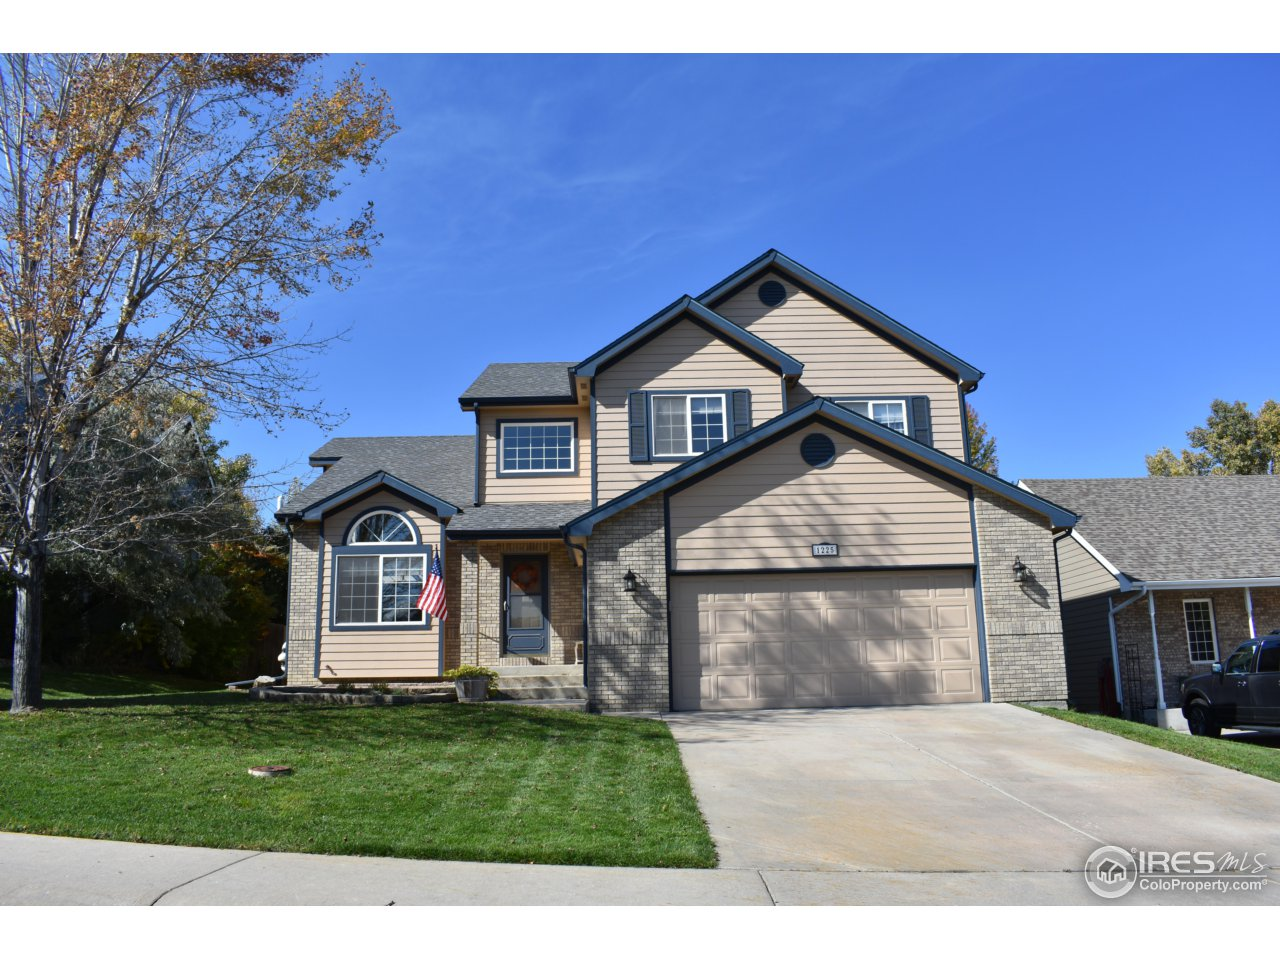 1225 51st Ave Ct, Greeley CO 80634